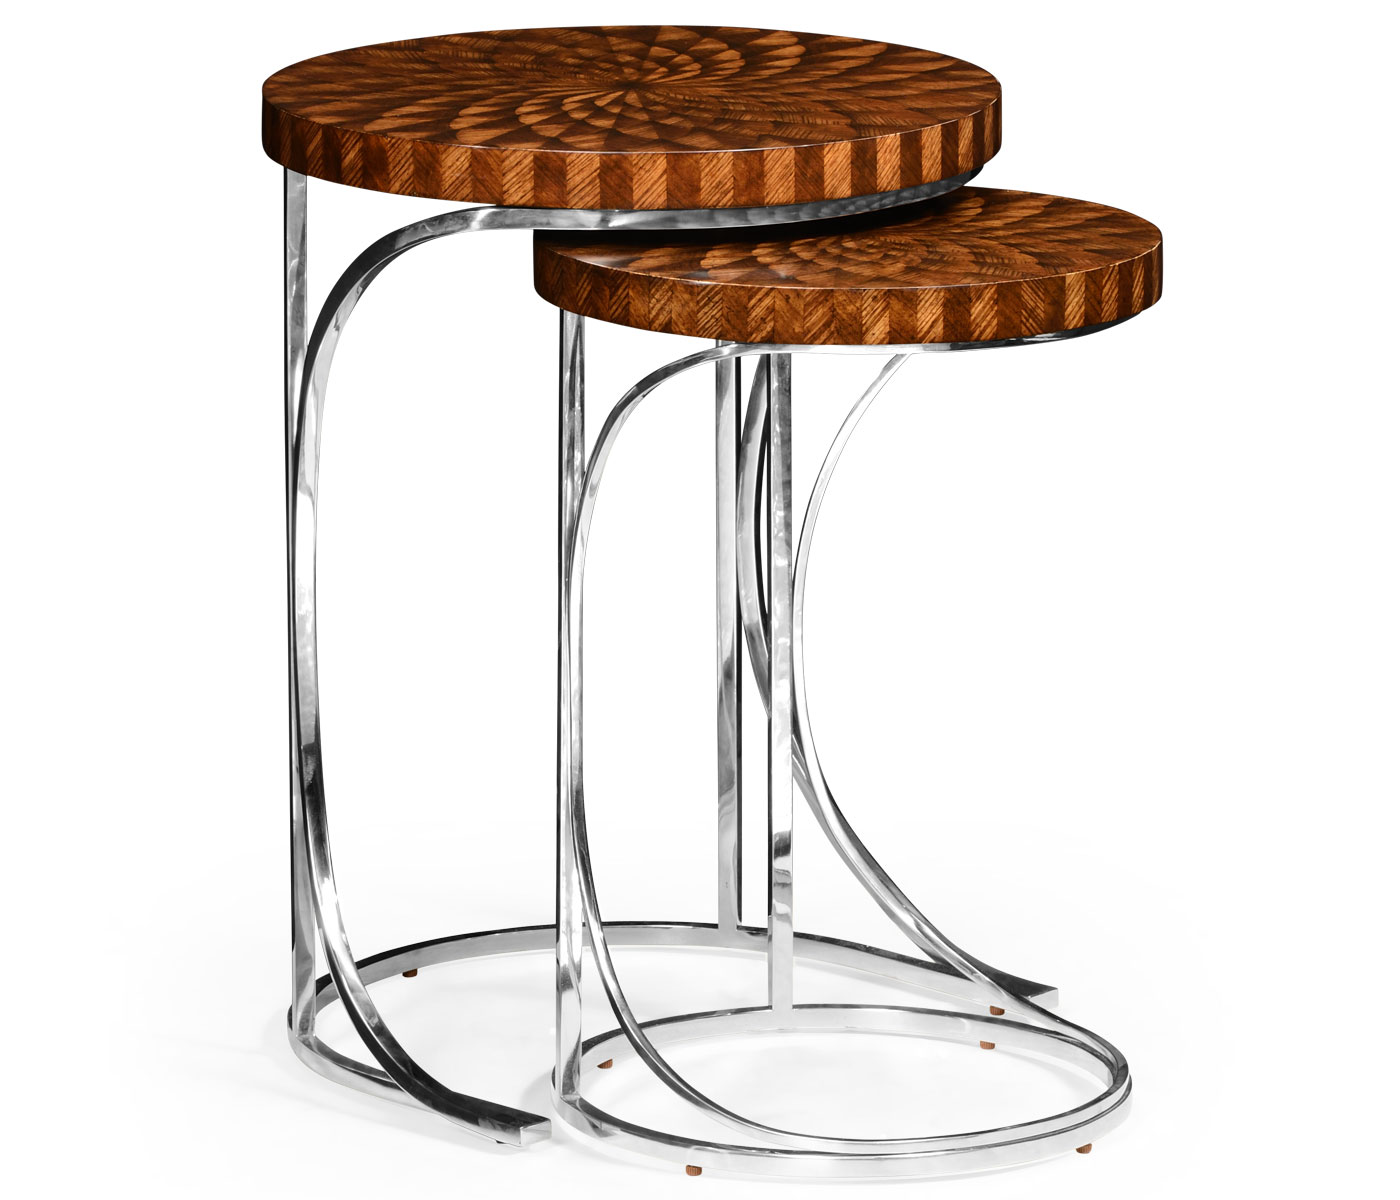 silver drum side table the fantastic nice inlaid wood end tables nesting zebrano zebra limited production design tall marquetry hospitality residential interior designer available